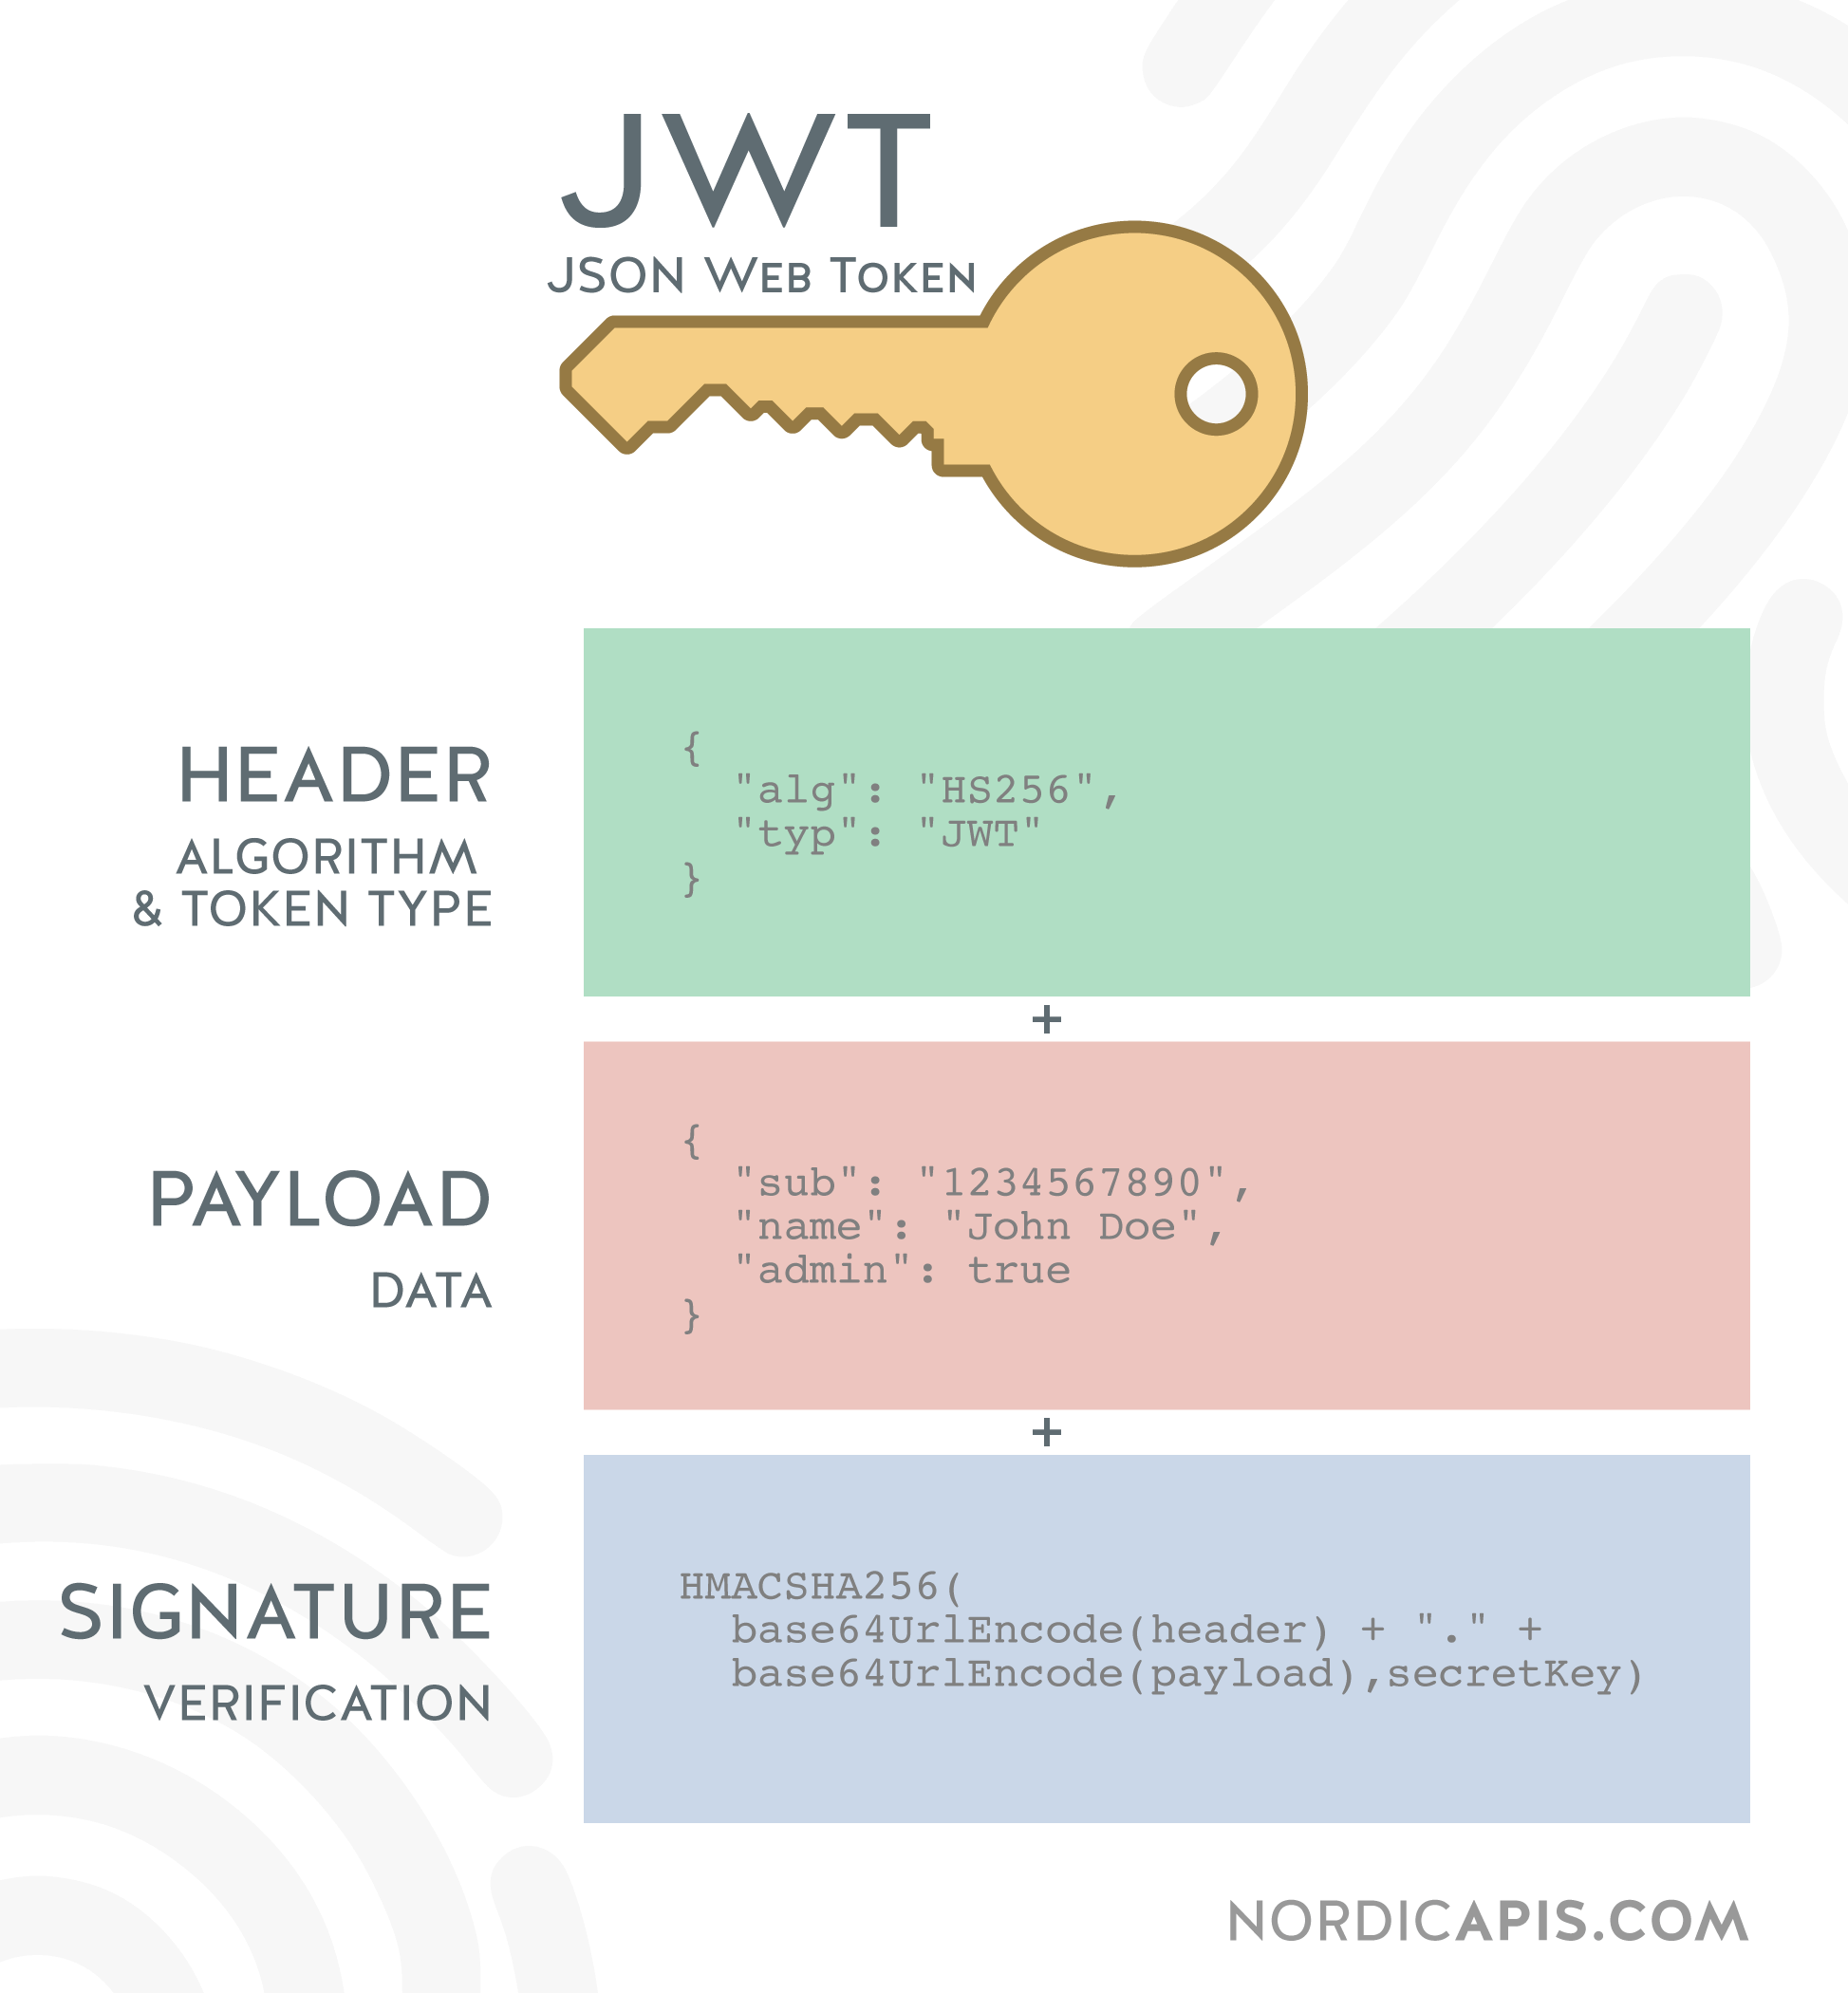 What is a JWT